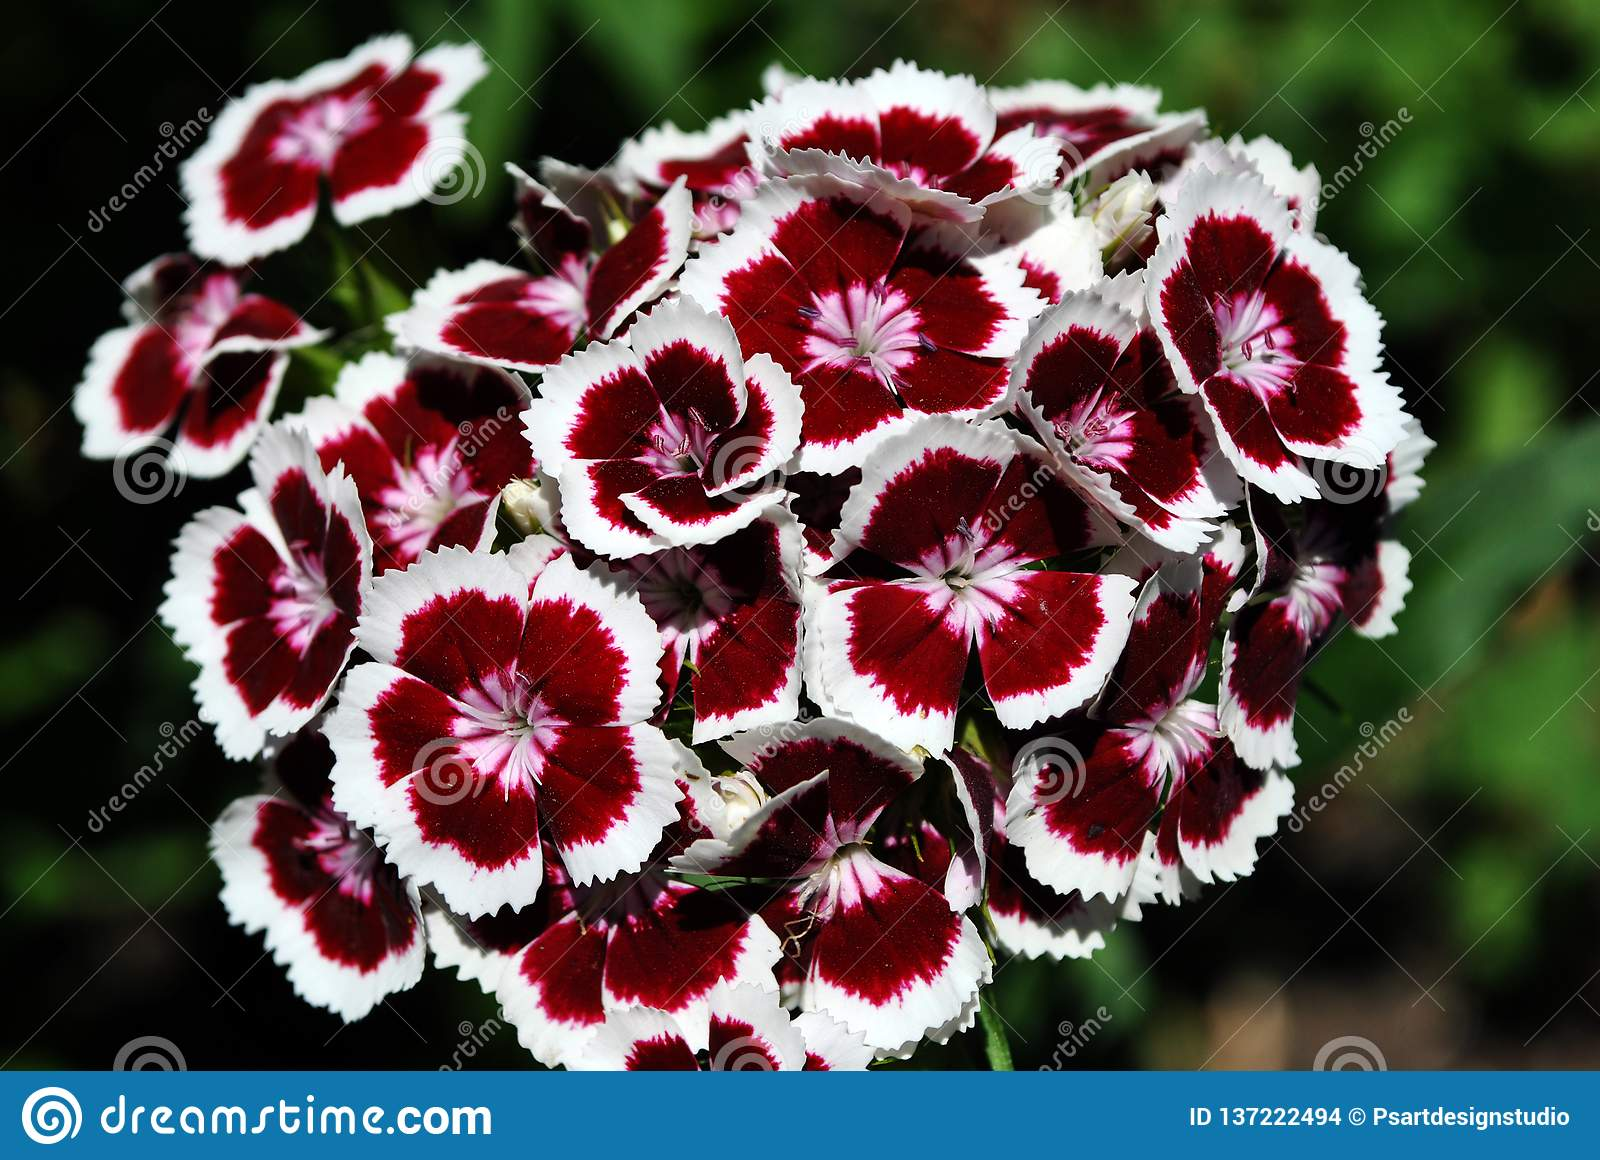 Dianthus barbatus Sweet William flowers blooming, top view, green soft background